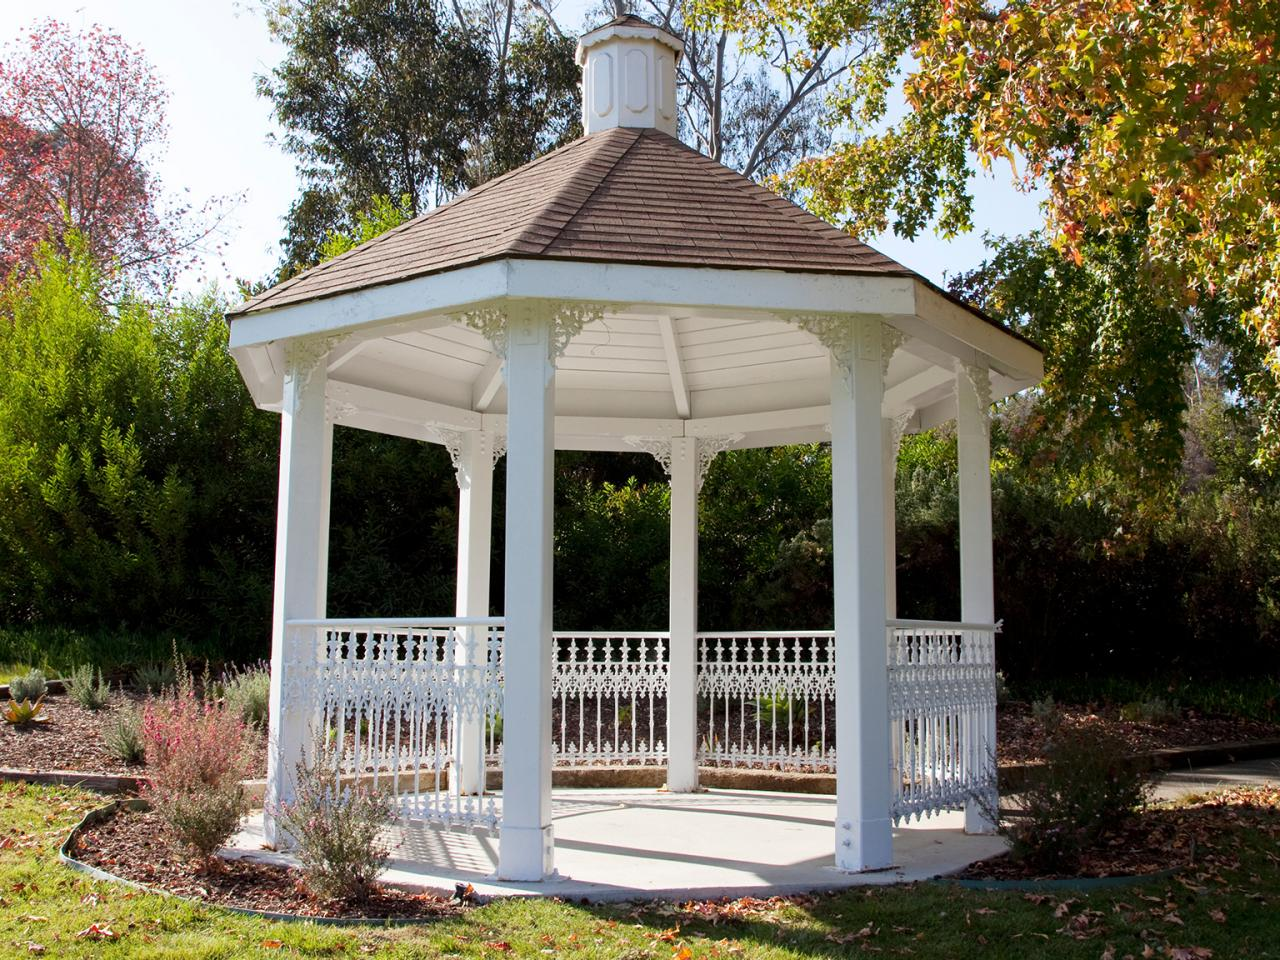 Outdoor gazebo ideas hgtv for Plans for gazebo with fireplace